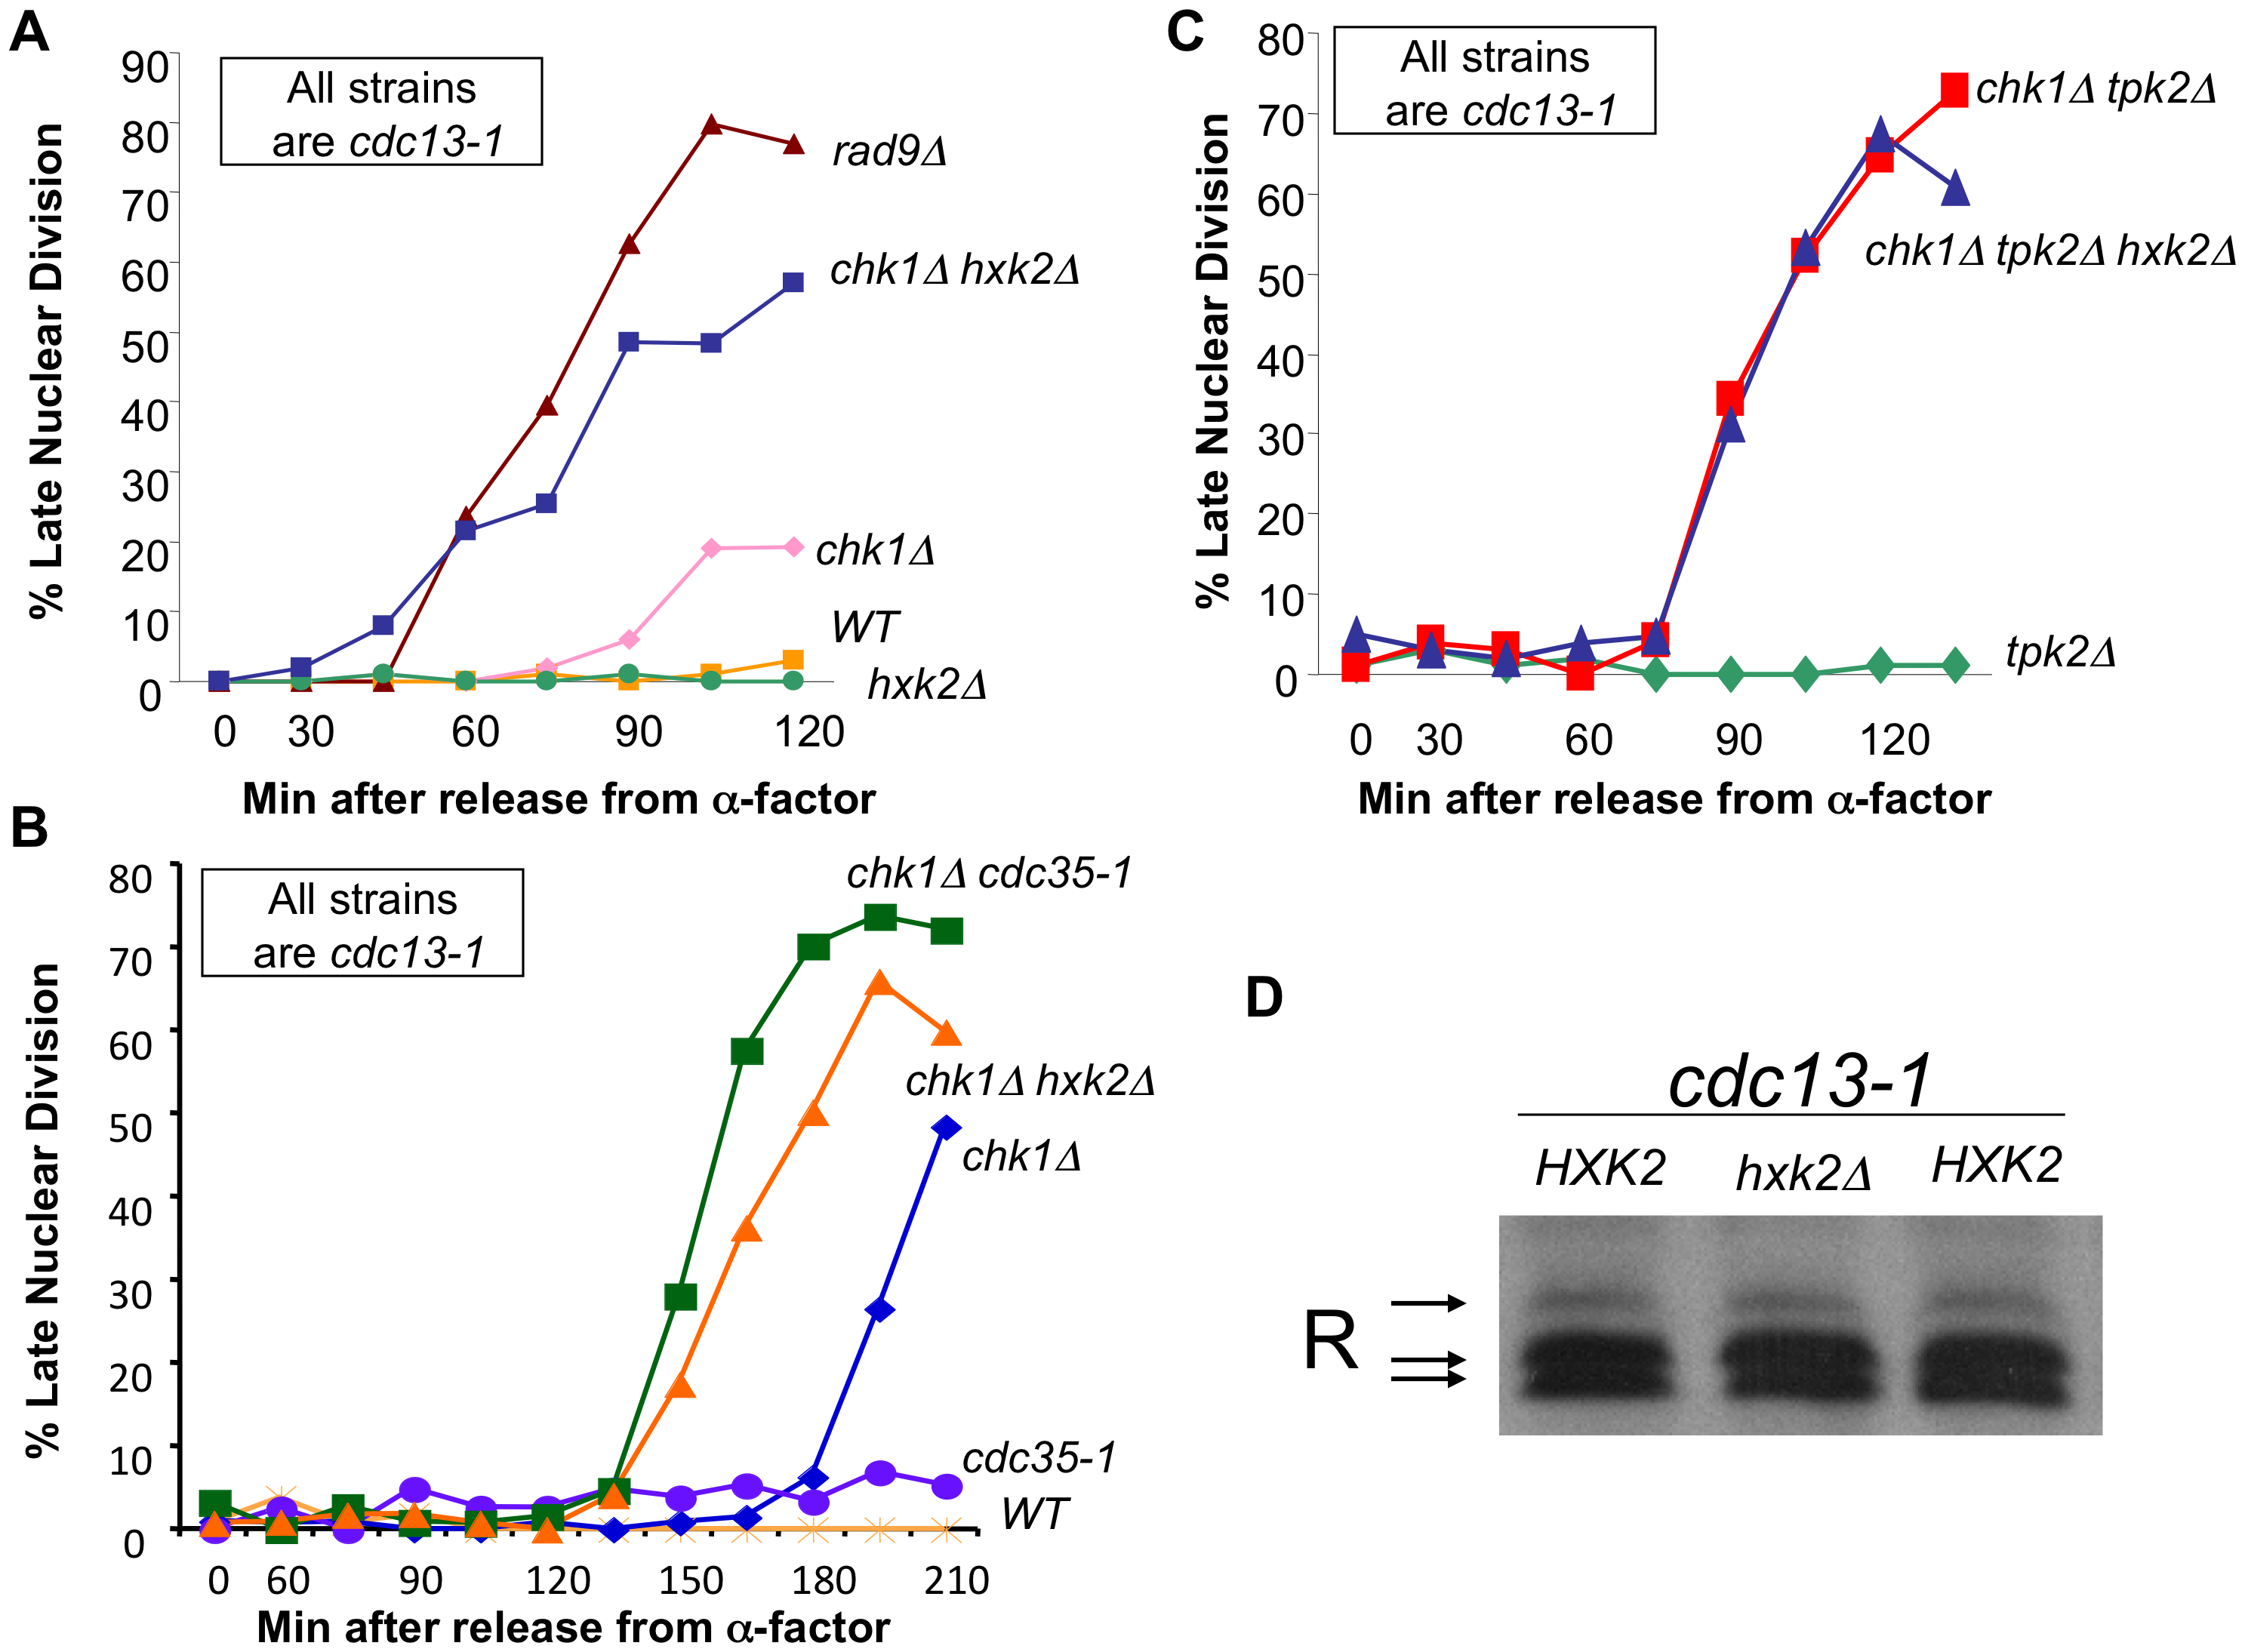 cAMP and Hxk2 are required for the role of PKA in the DNA damage checkpoint.